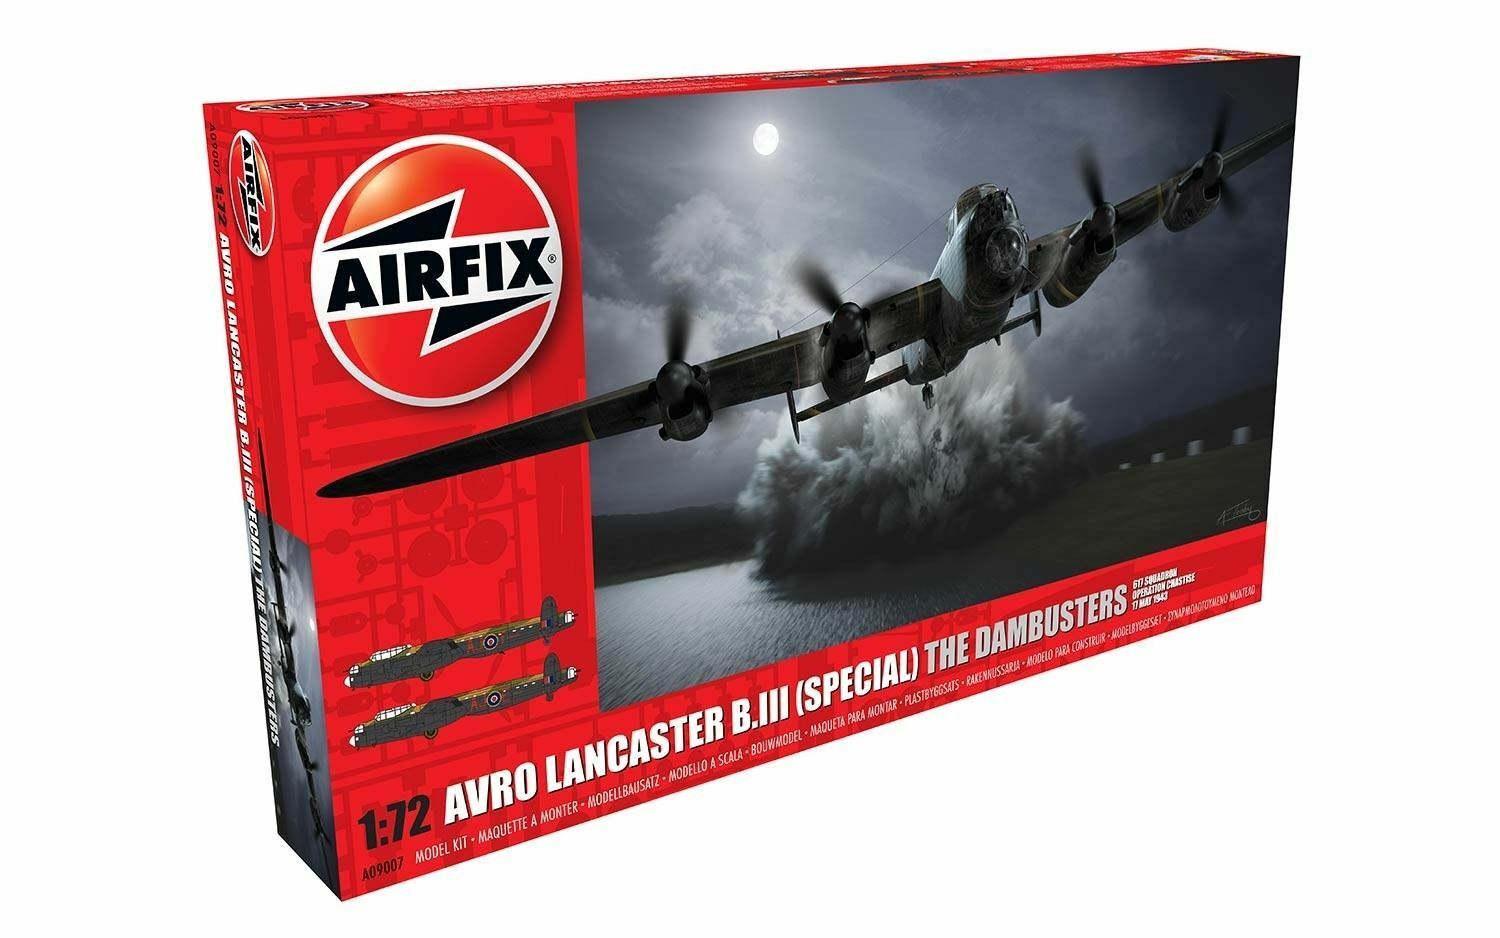 RAF Royal Air Force Avro Lancaster B.III (Special) The Dambusters Airfix Set